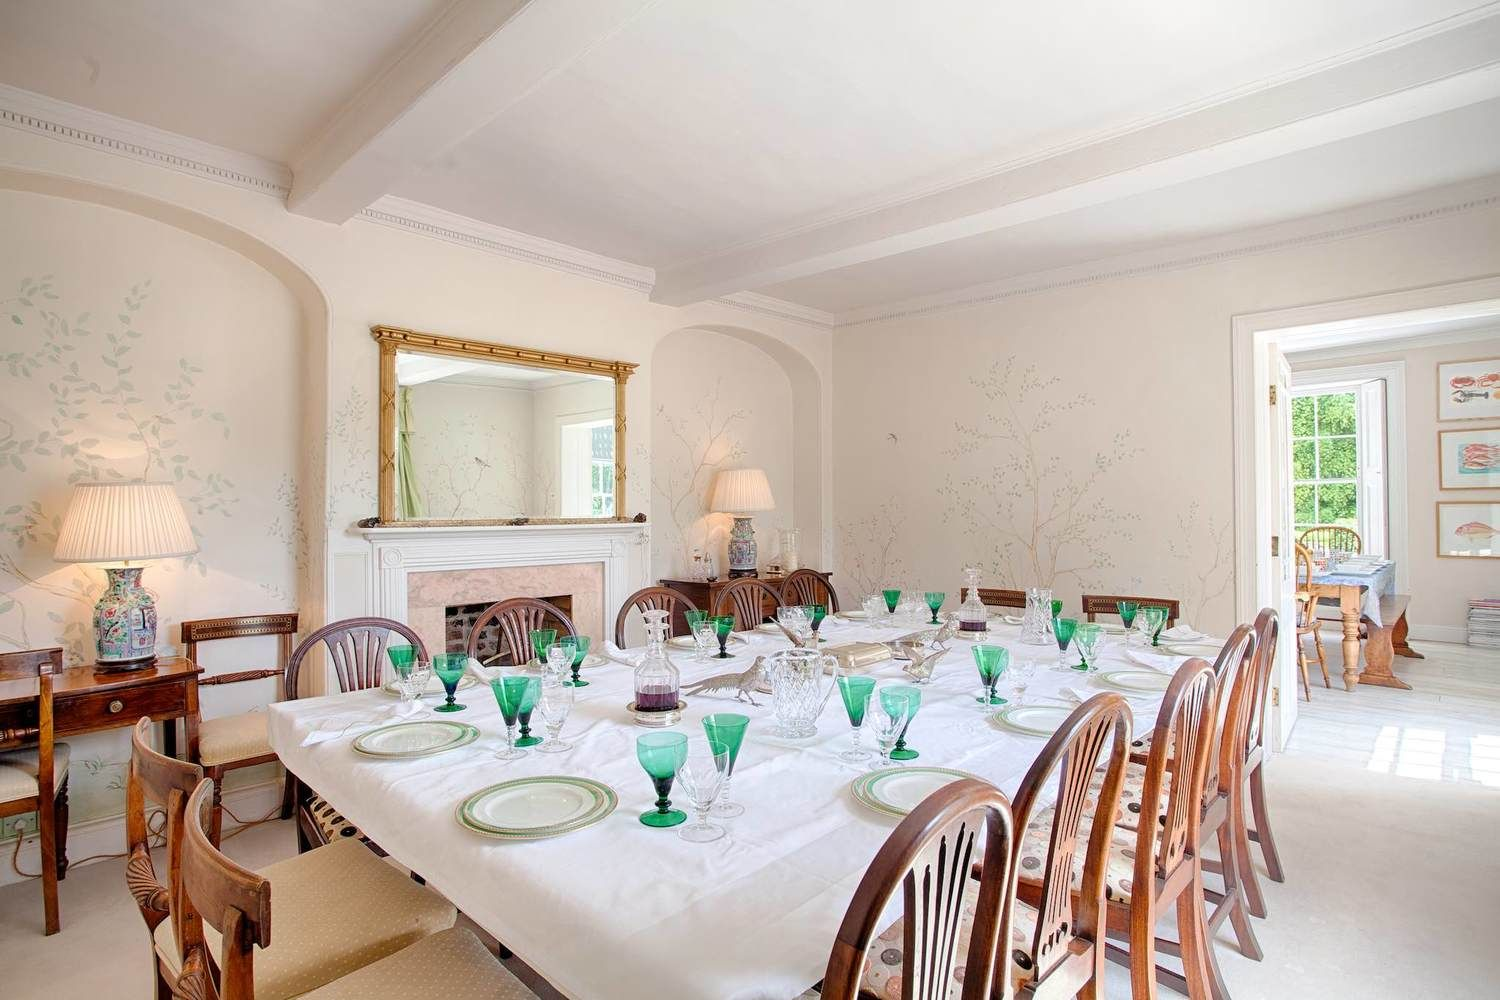 Ground floor: Dining room with a huge table seating 15